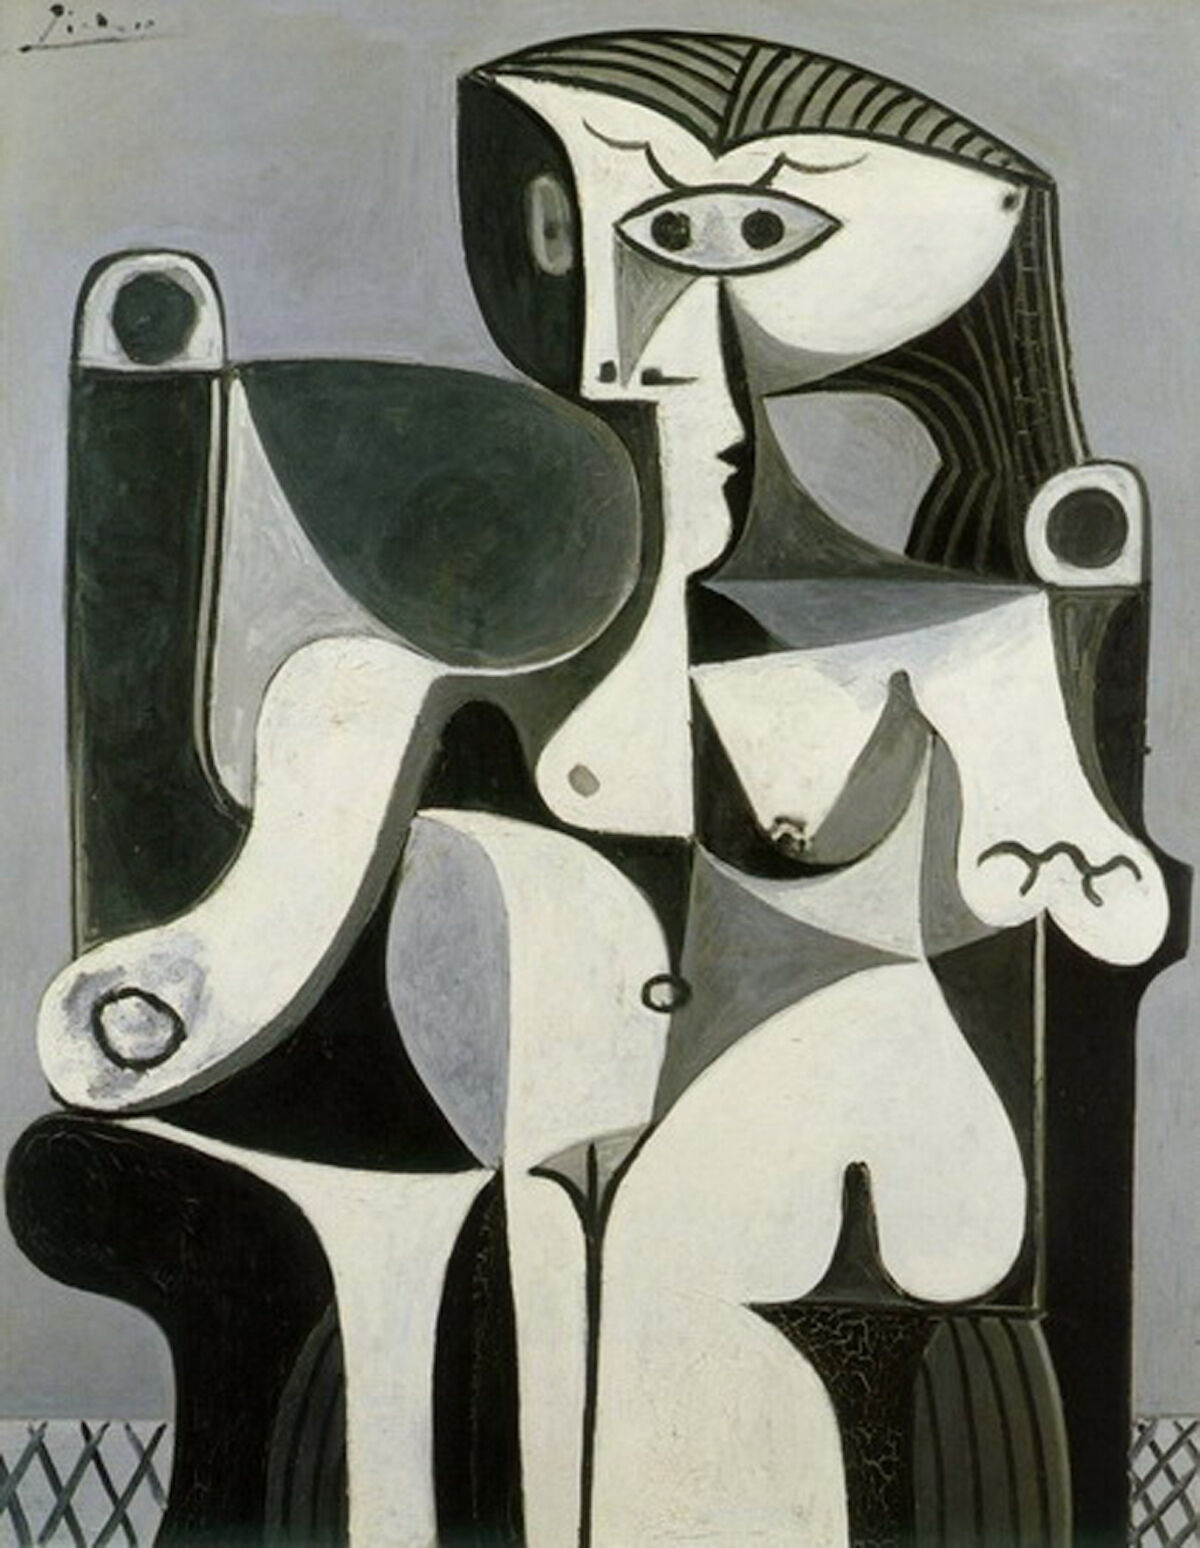 Pablo Picasso, Femme assise (Jacqueline), 1962. © Estate of Pablo Picasso / Artists Rights Society (ARS), New York. Courtesy the Donald B. Marron Family Collection, Acquavella Galleries, Gagosian, and Pace Gallery.